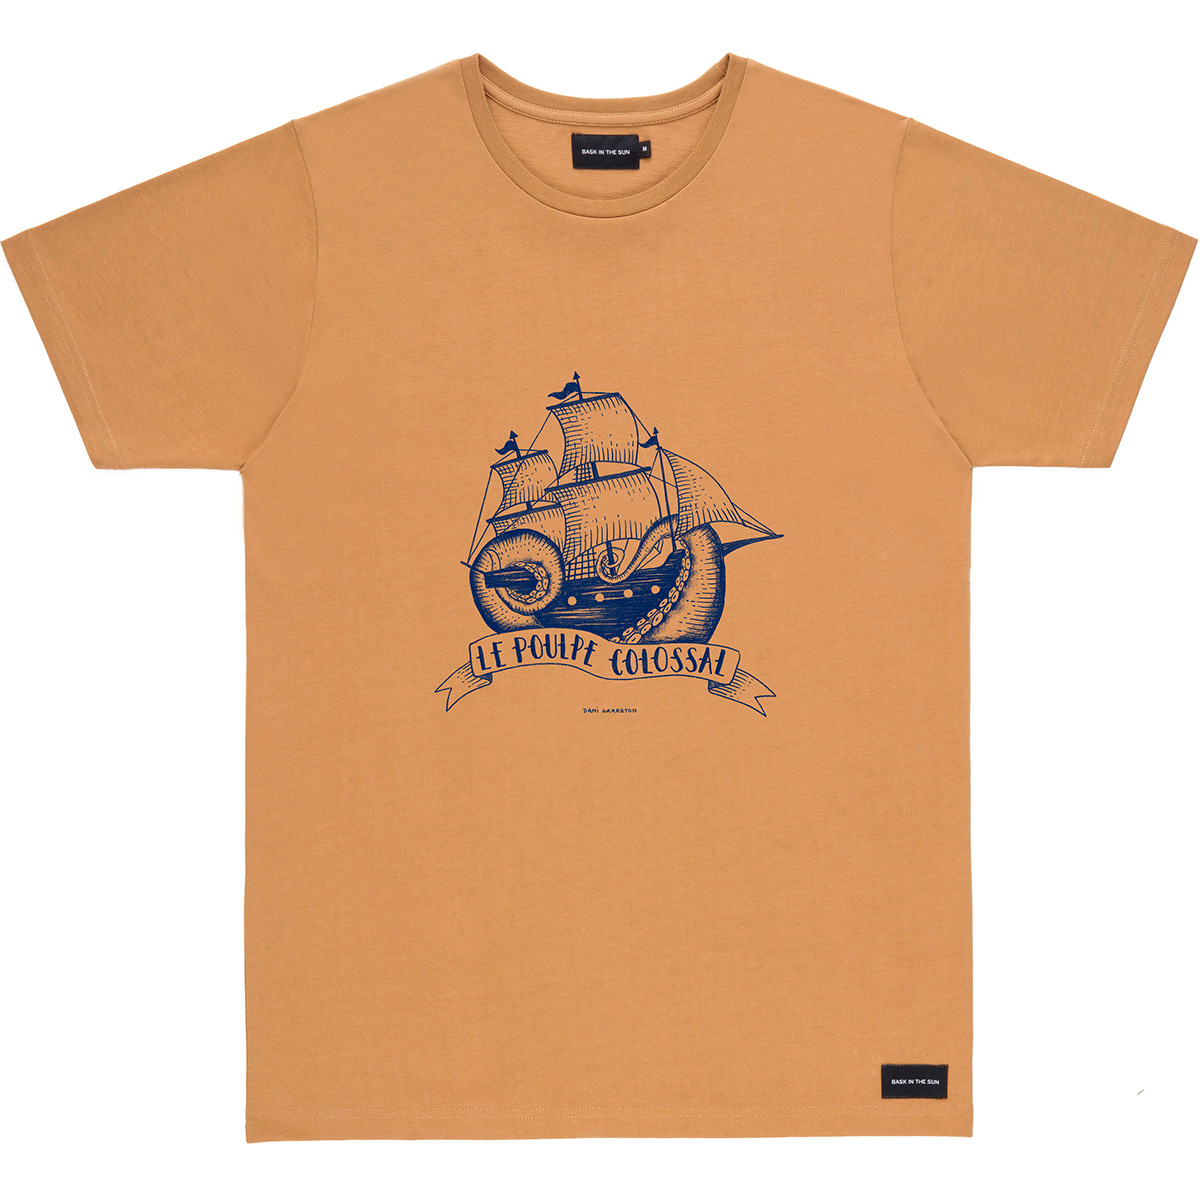 Bask in the Sun - T-shirt en coton bio brown poulpe